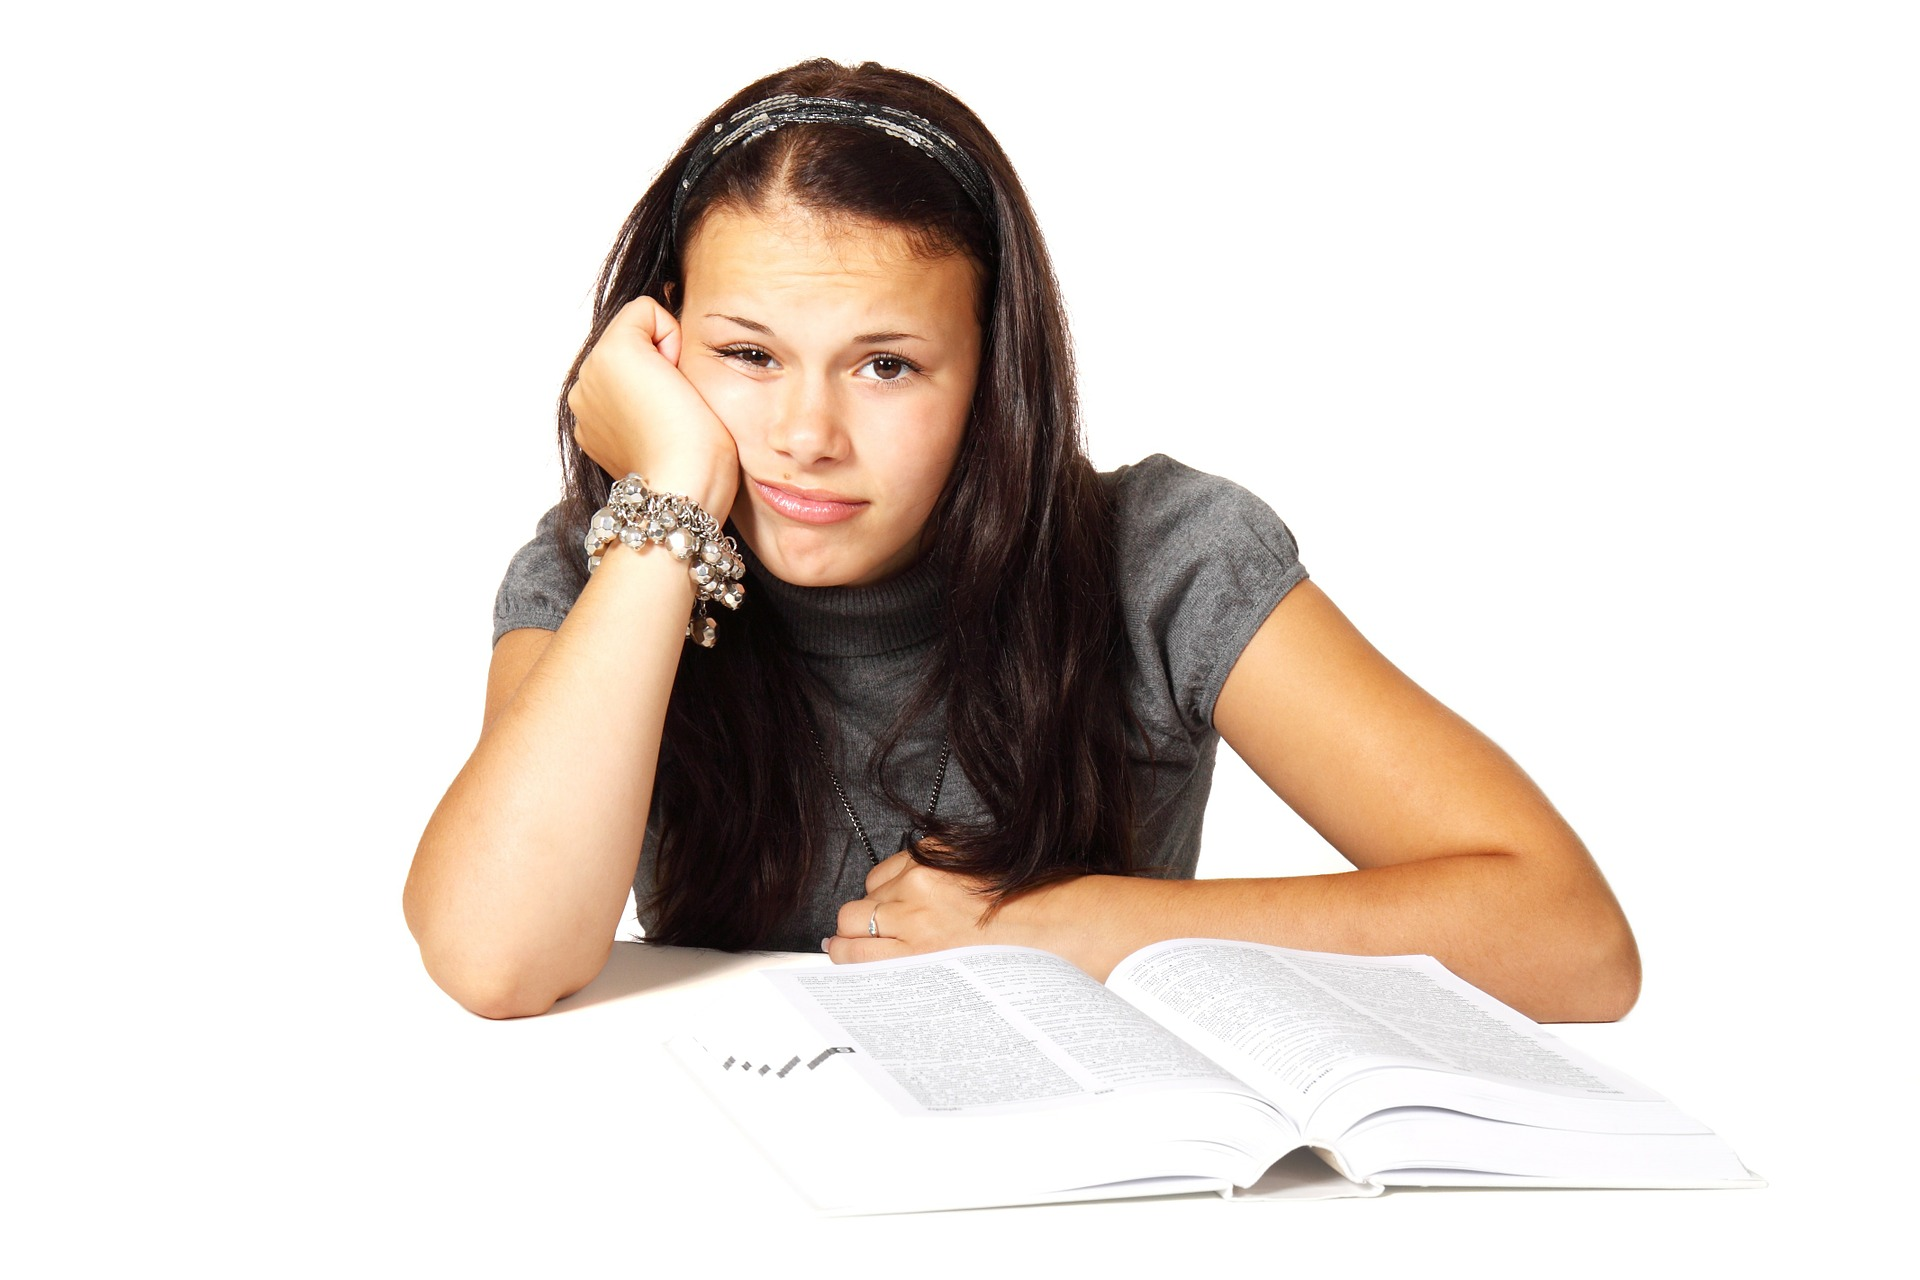 MANAGING AND COMBATING TEST-TAKING ANXIETY IN CHILDREN